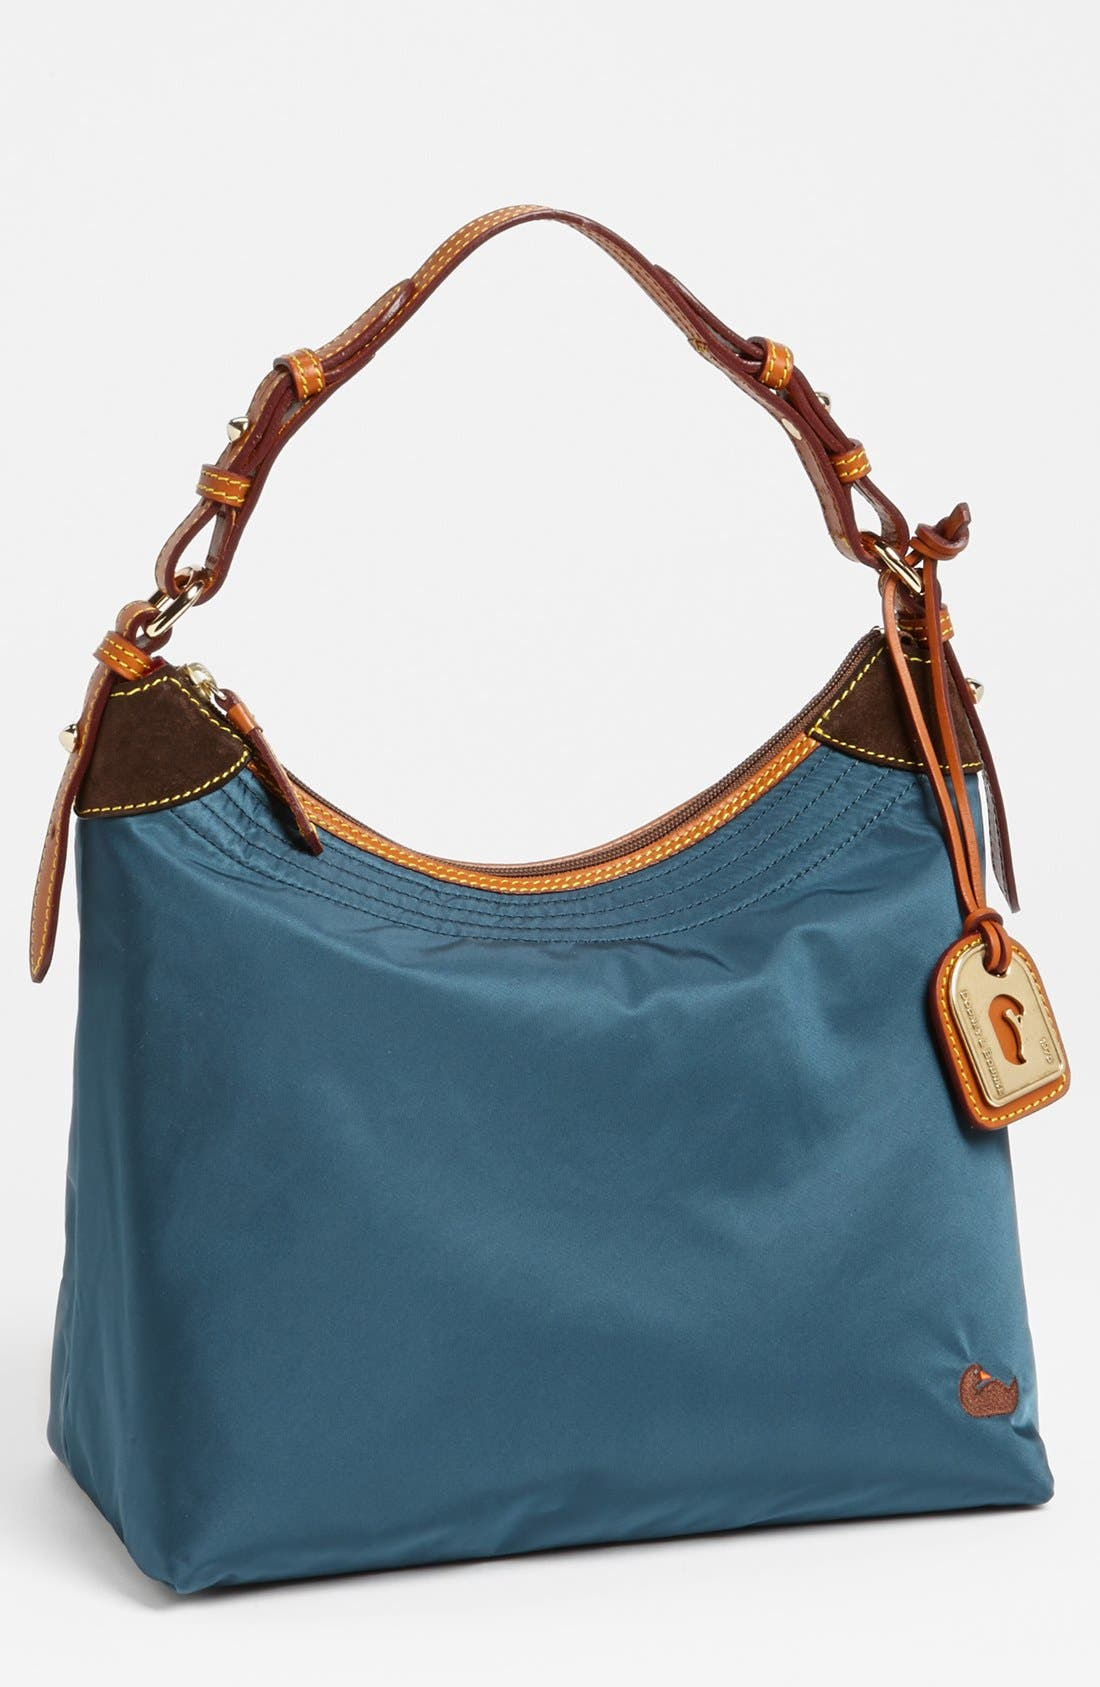 Alternate Image 1 Selected - Dooney & Bourke 'Erica Sport Sac - Large' Nylon Hobo